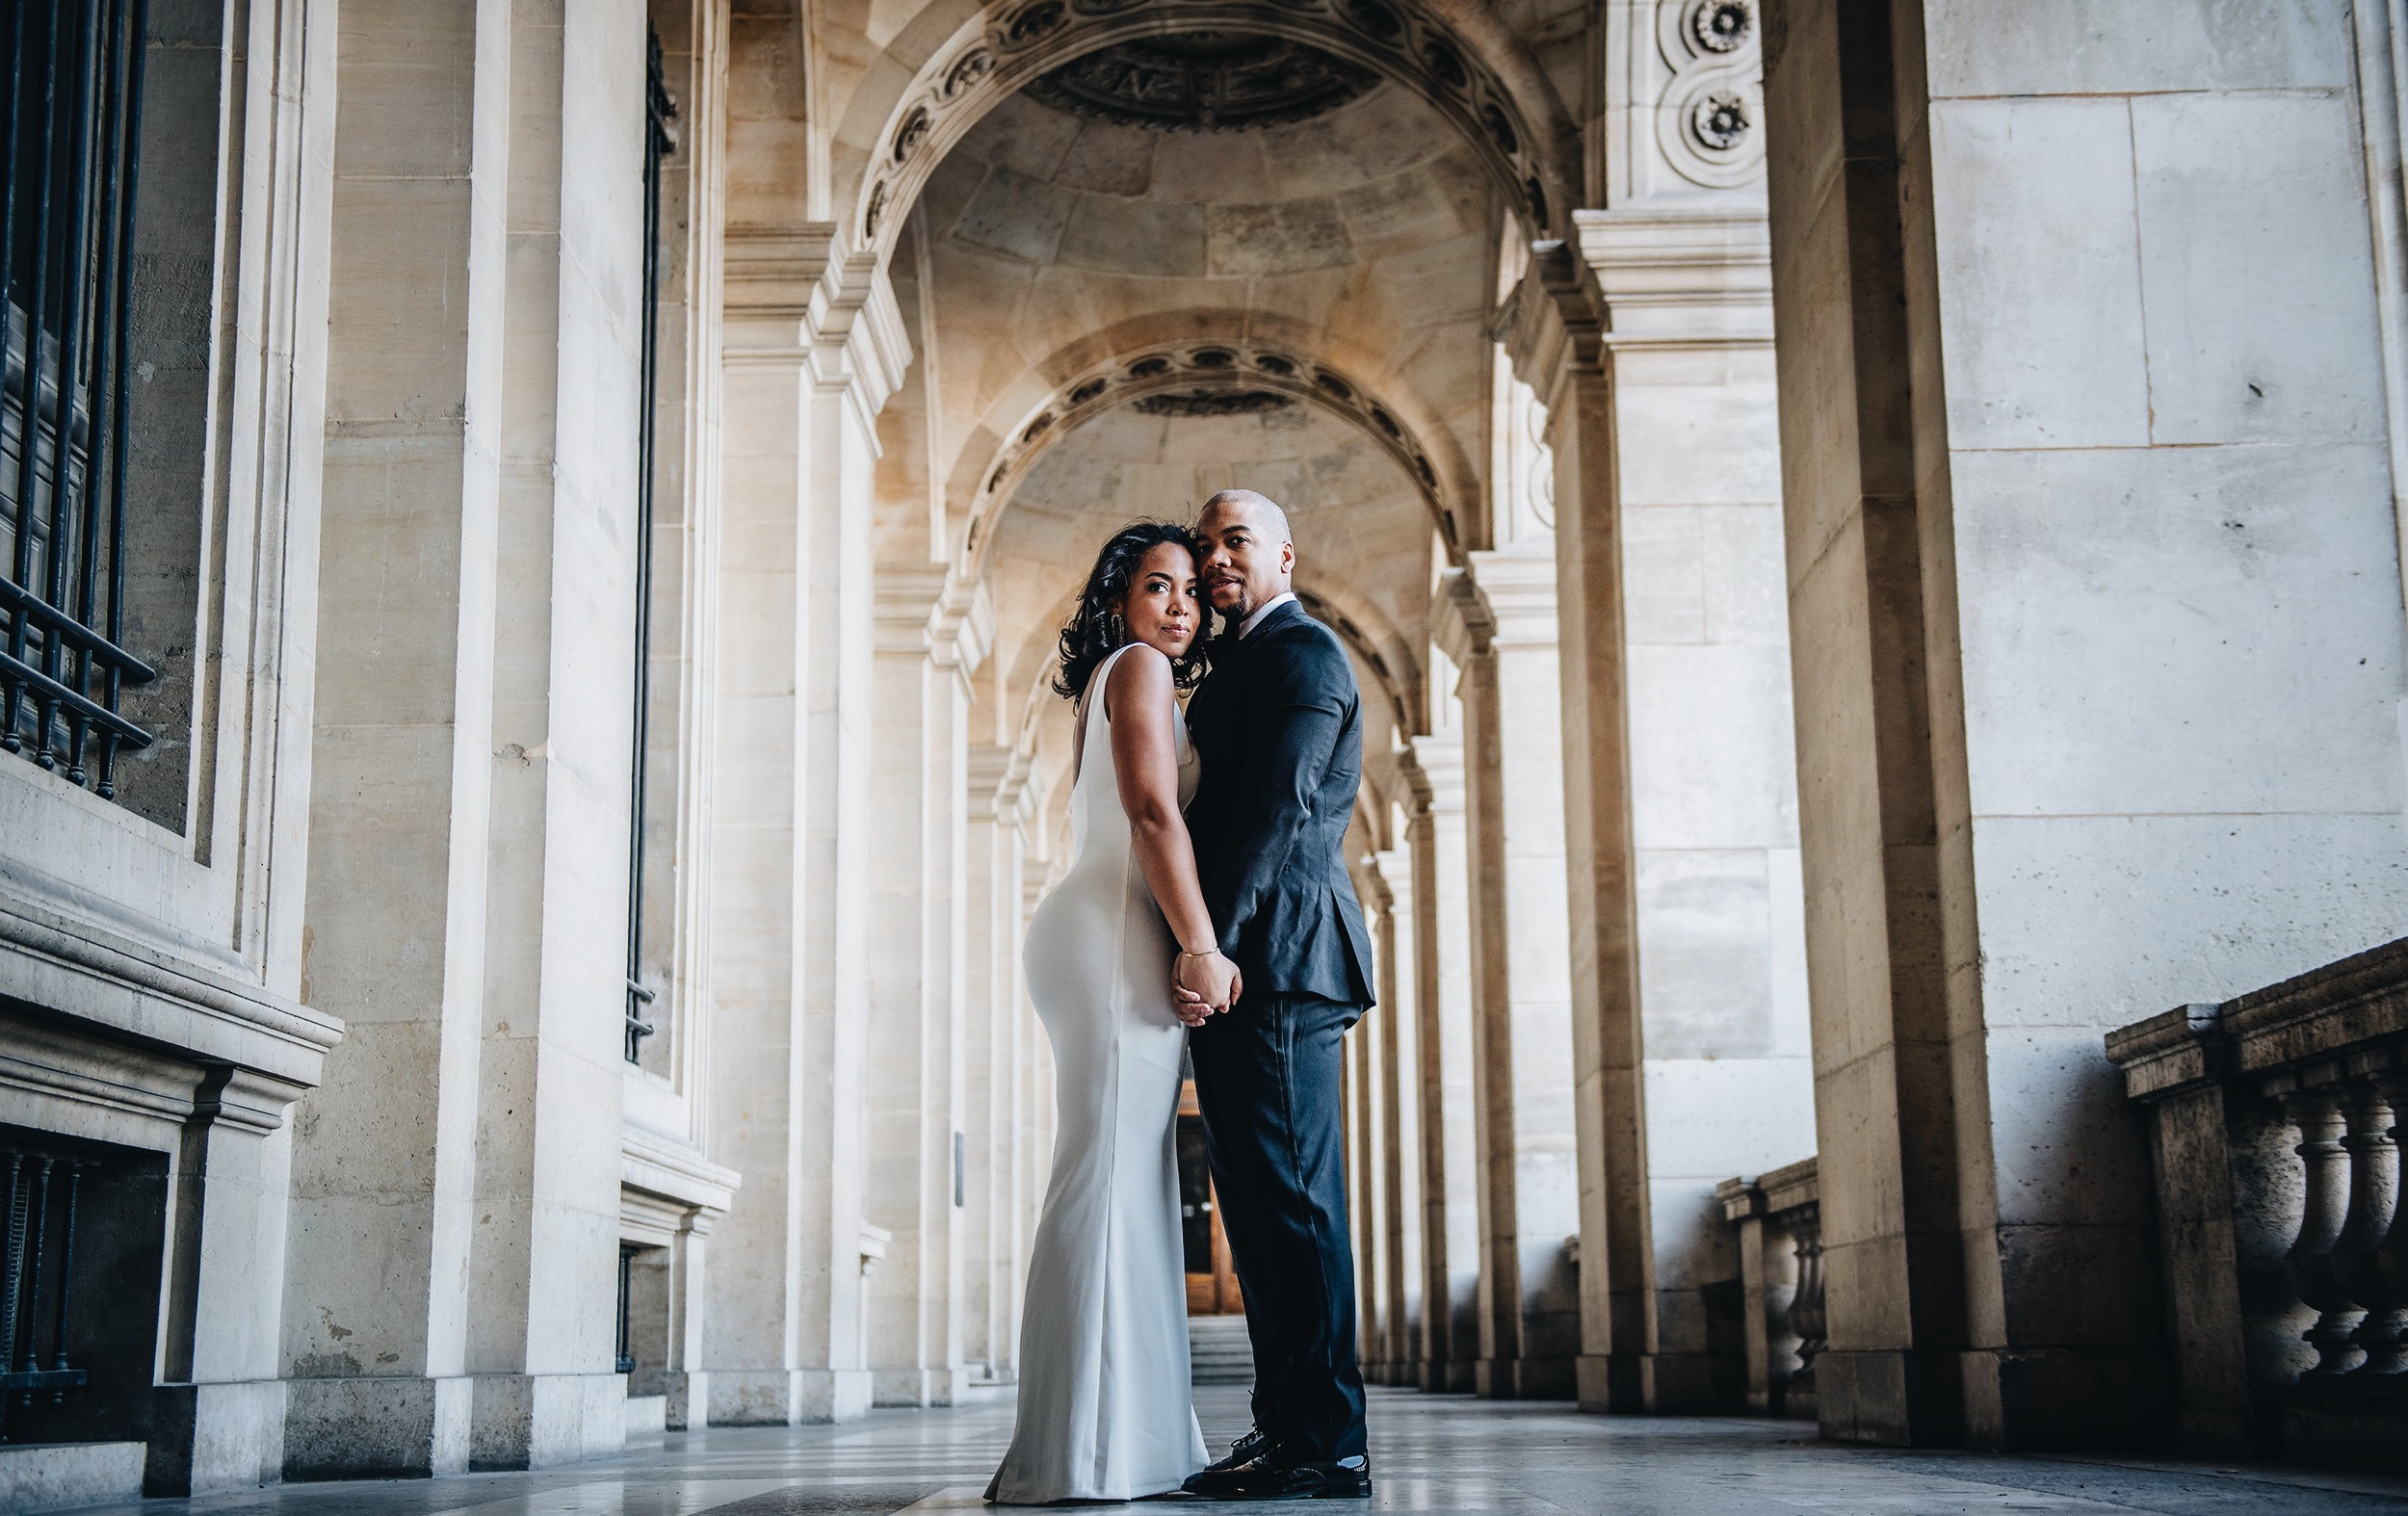 paris-engagement-session-the-louvre-katie-may-lucy-dress-anthropologie-bhldn-bridal-gown-bridesmaid-dress-the-black-tux-tuxedo-suit-rental-velvet-bow-tie-9.JPG